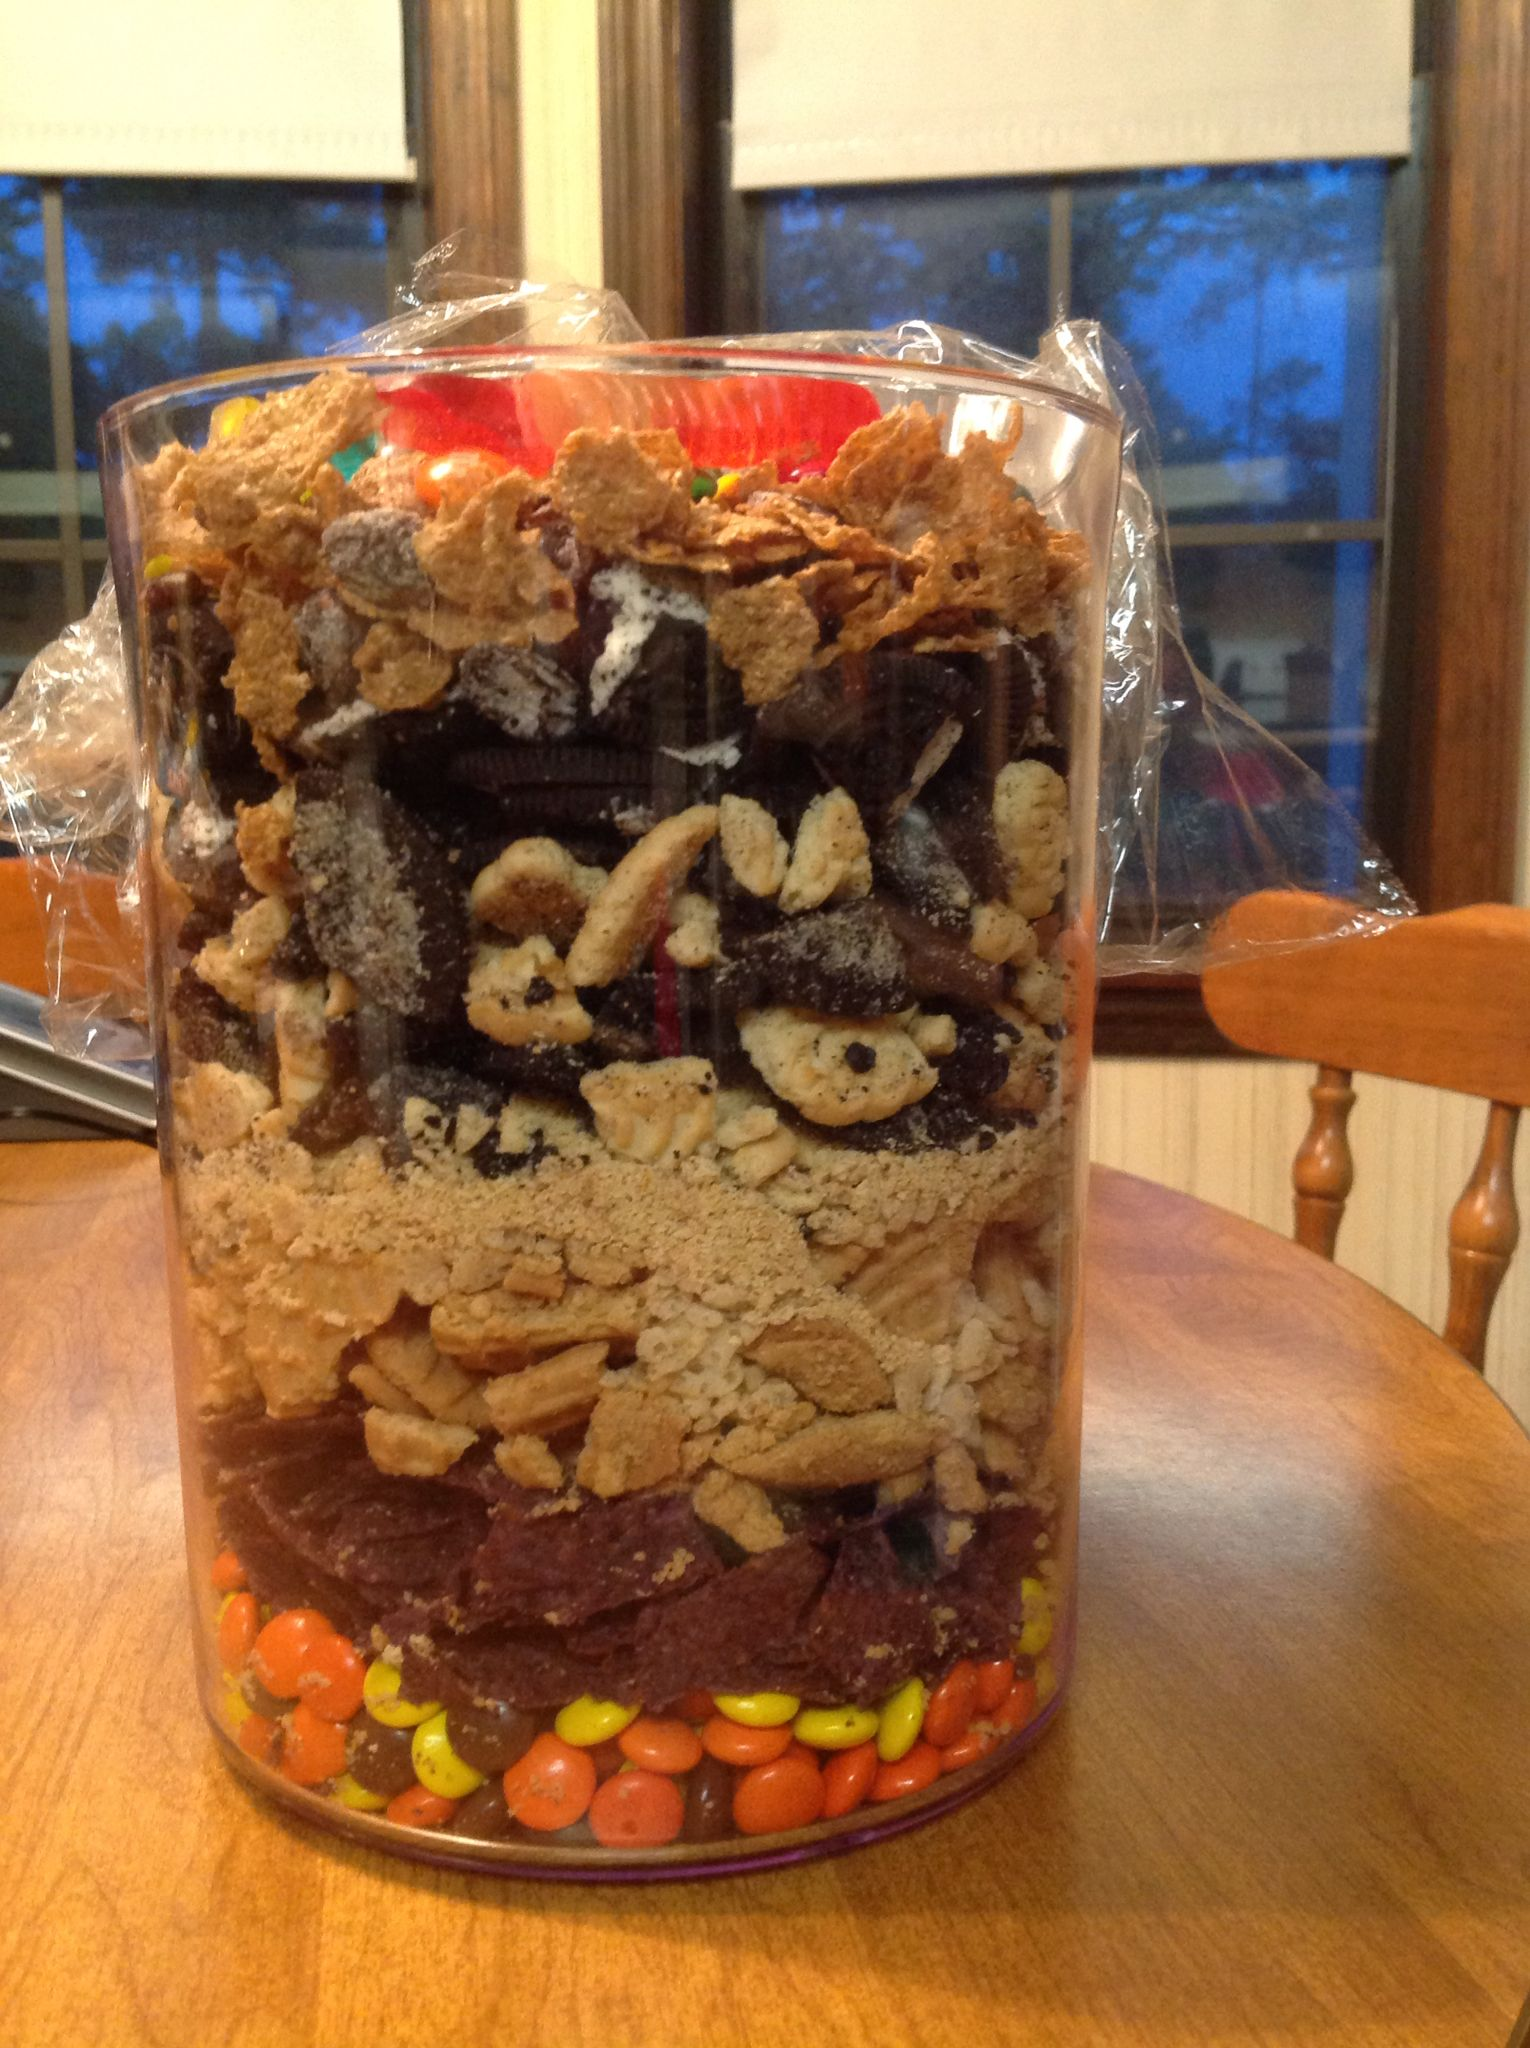 This Edible Soil Profile Is An Excellent Way To Teach